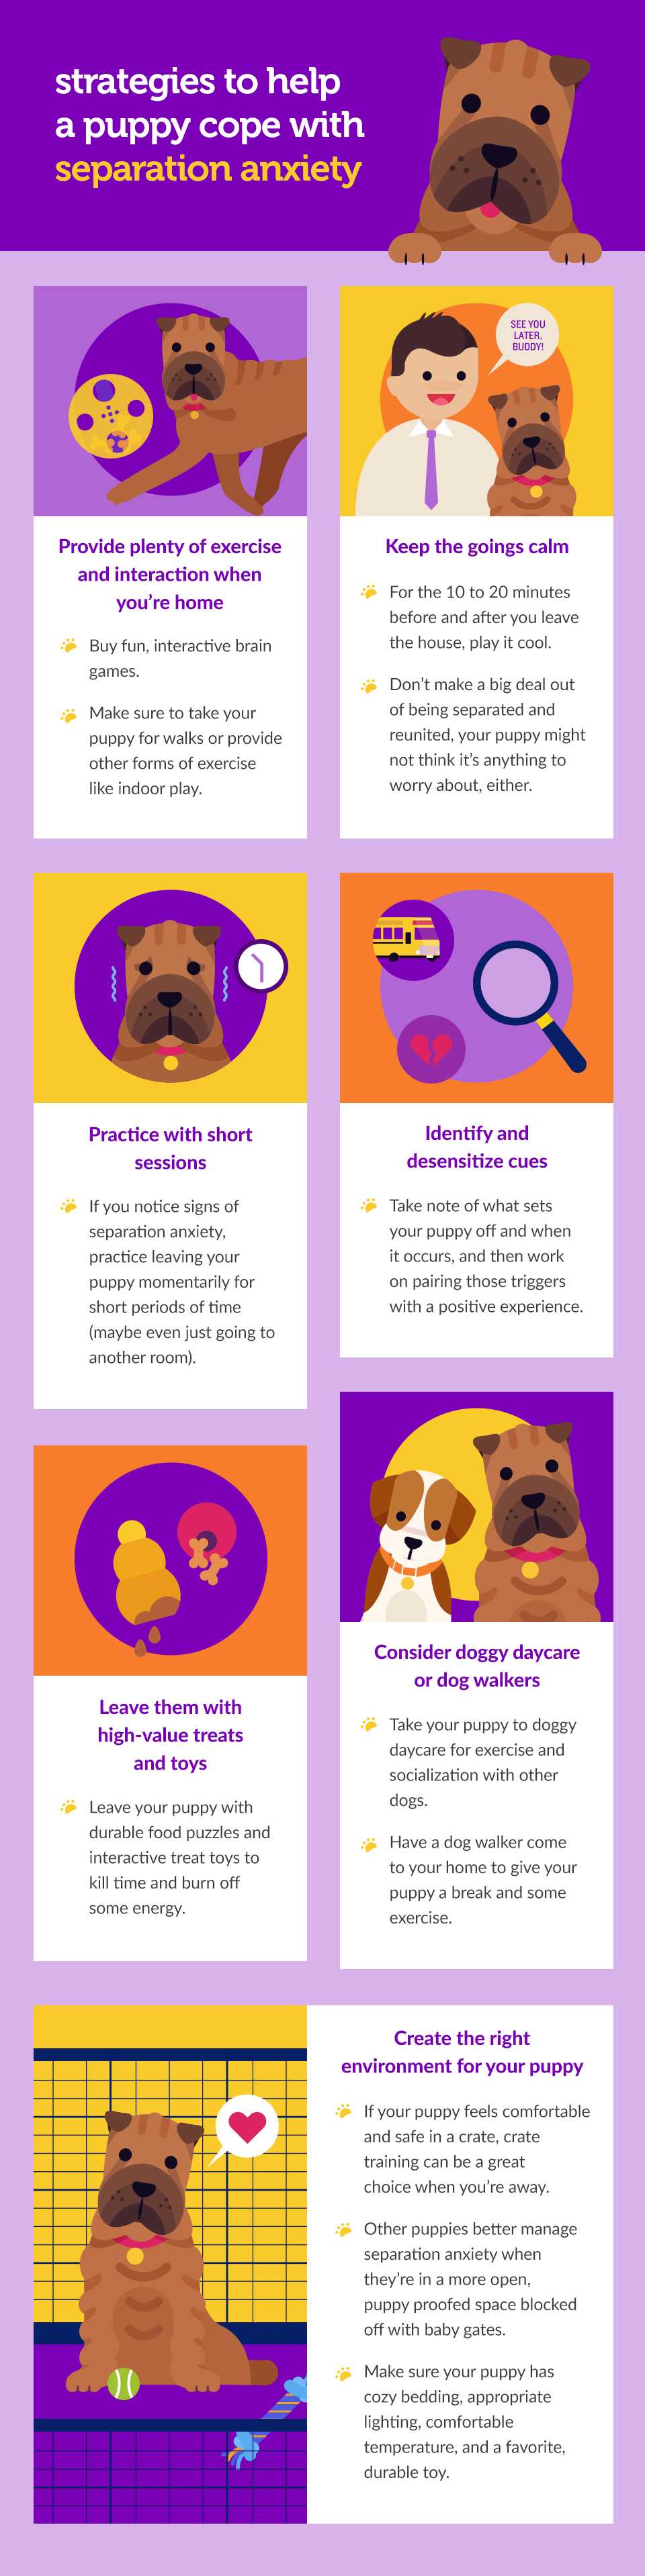 soothe-your-puppys-separation-anxiety-with-these-strategies-003-1